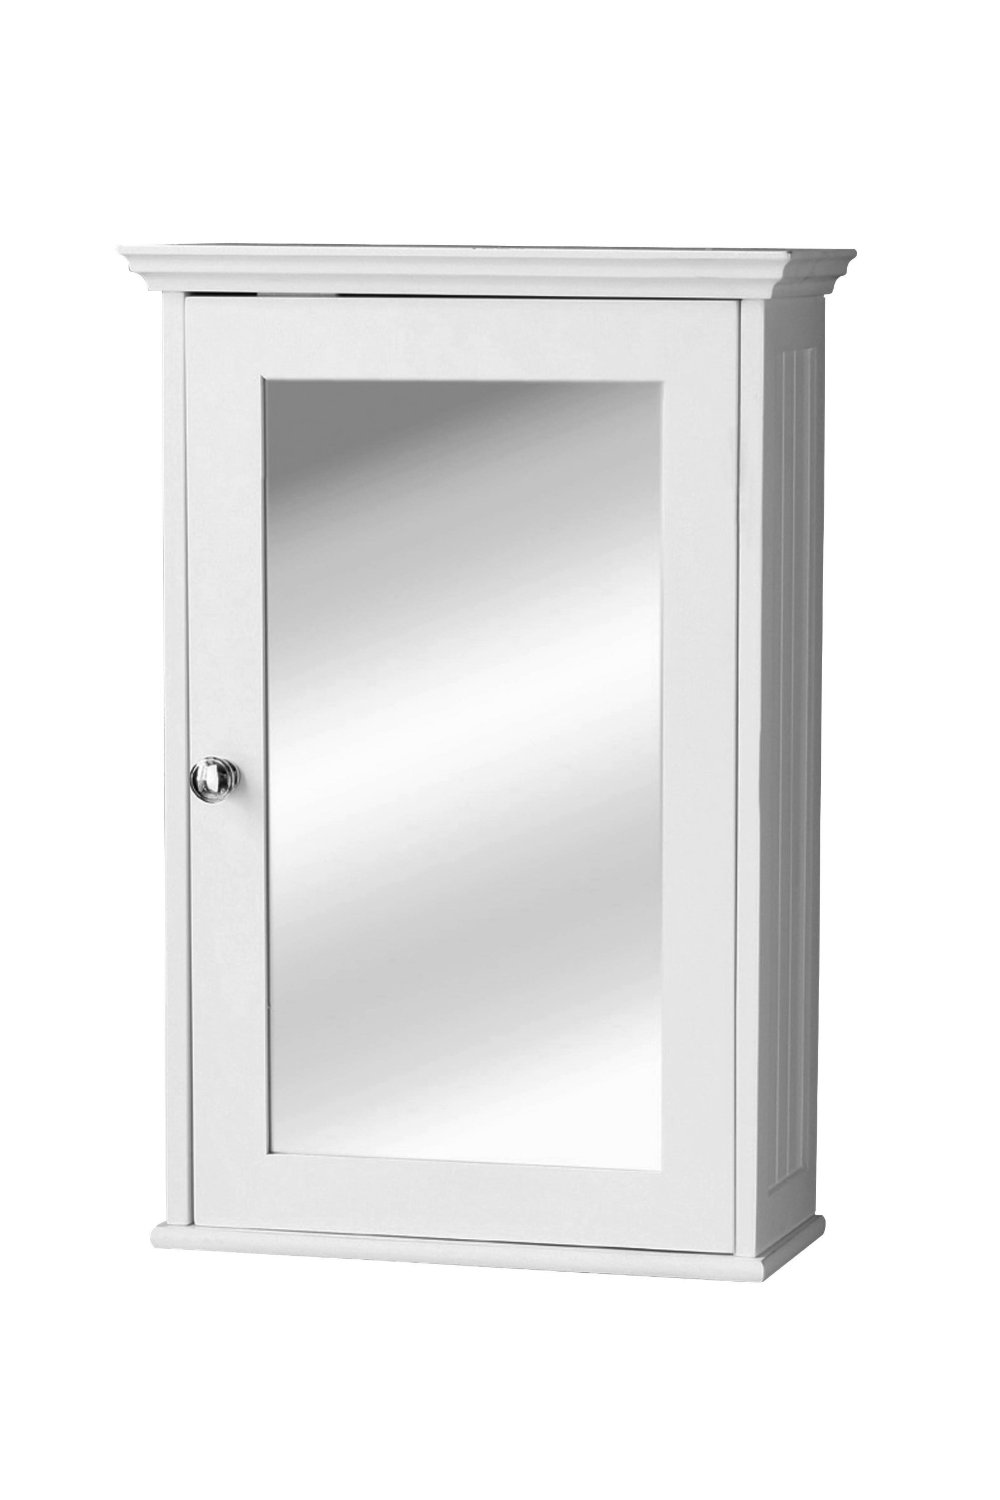 Portland mirrored bathroom storage cupboard cabinet white for White mirrored cabinet